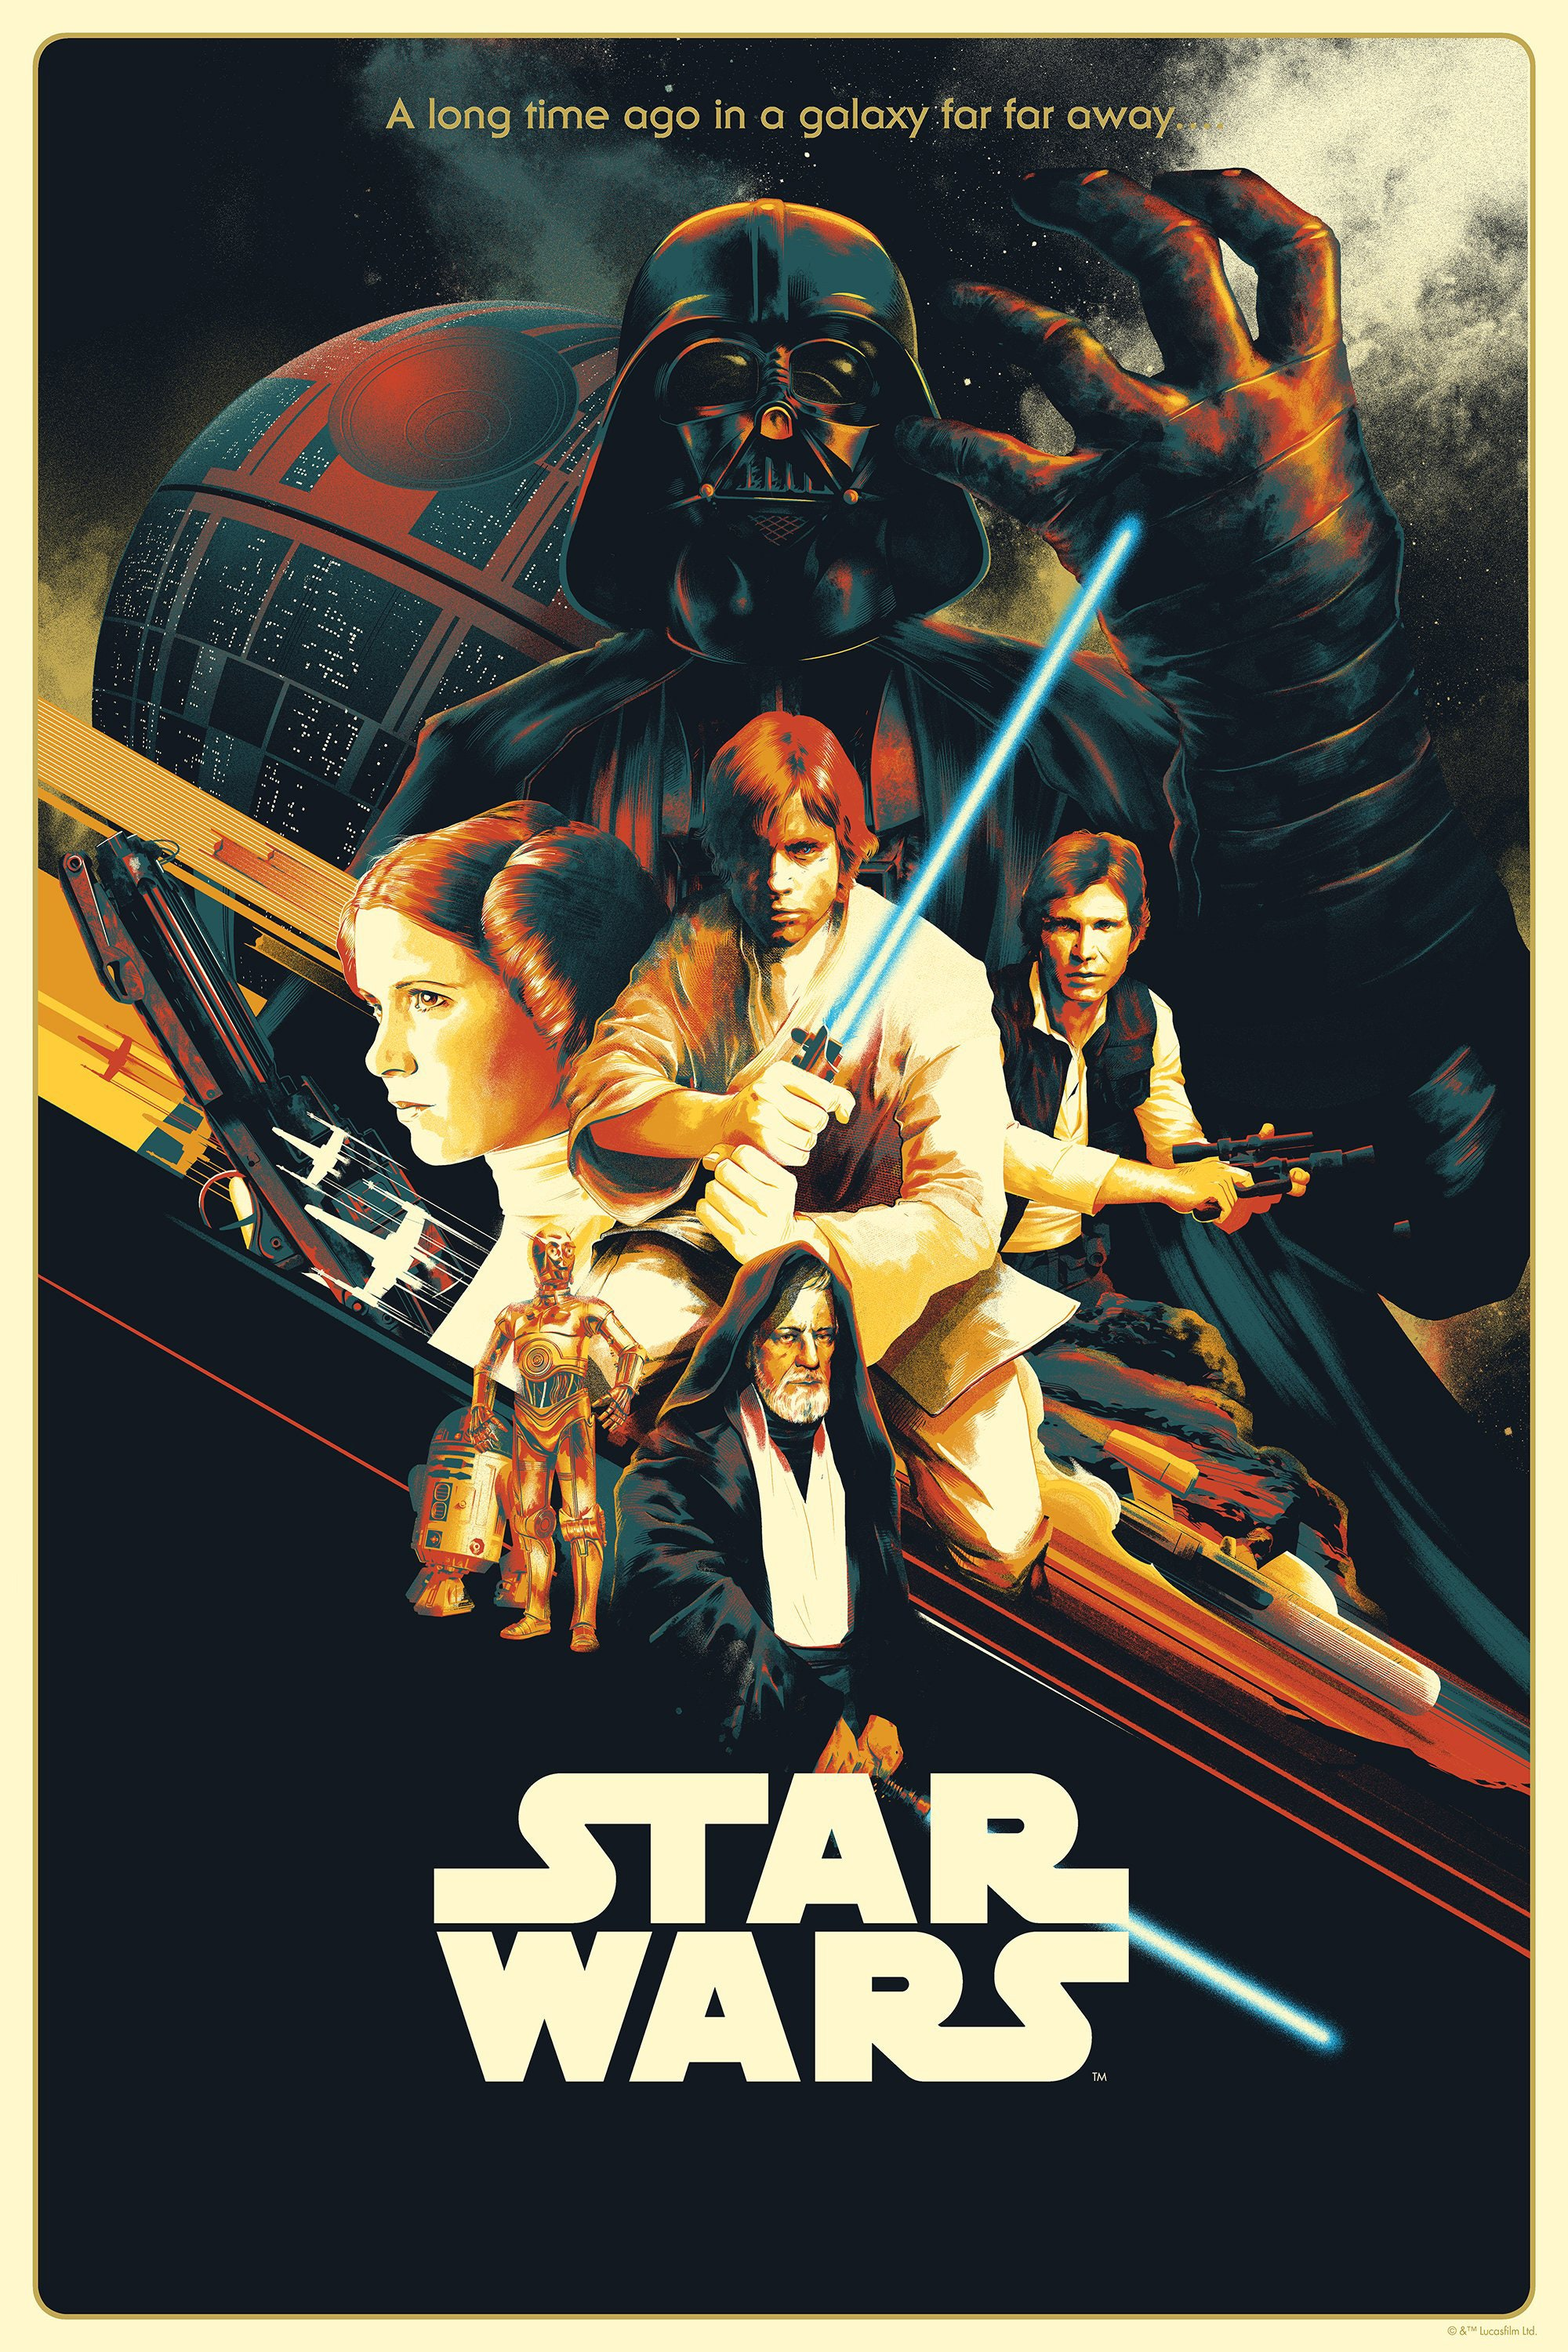 Star Wars New Hope Episode Iv 1977 Vintage Movie Poster